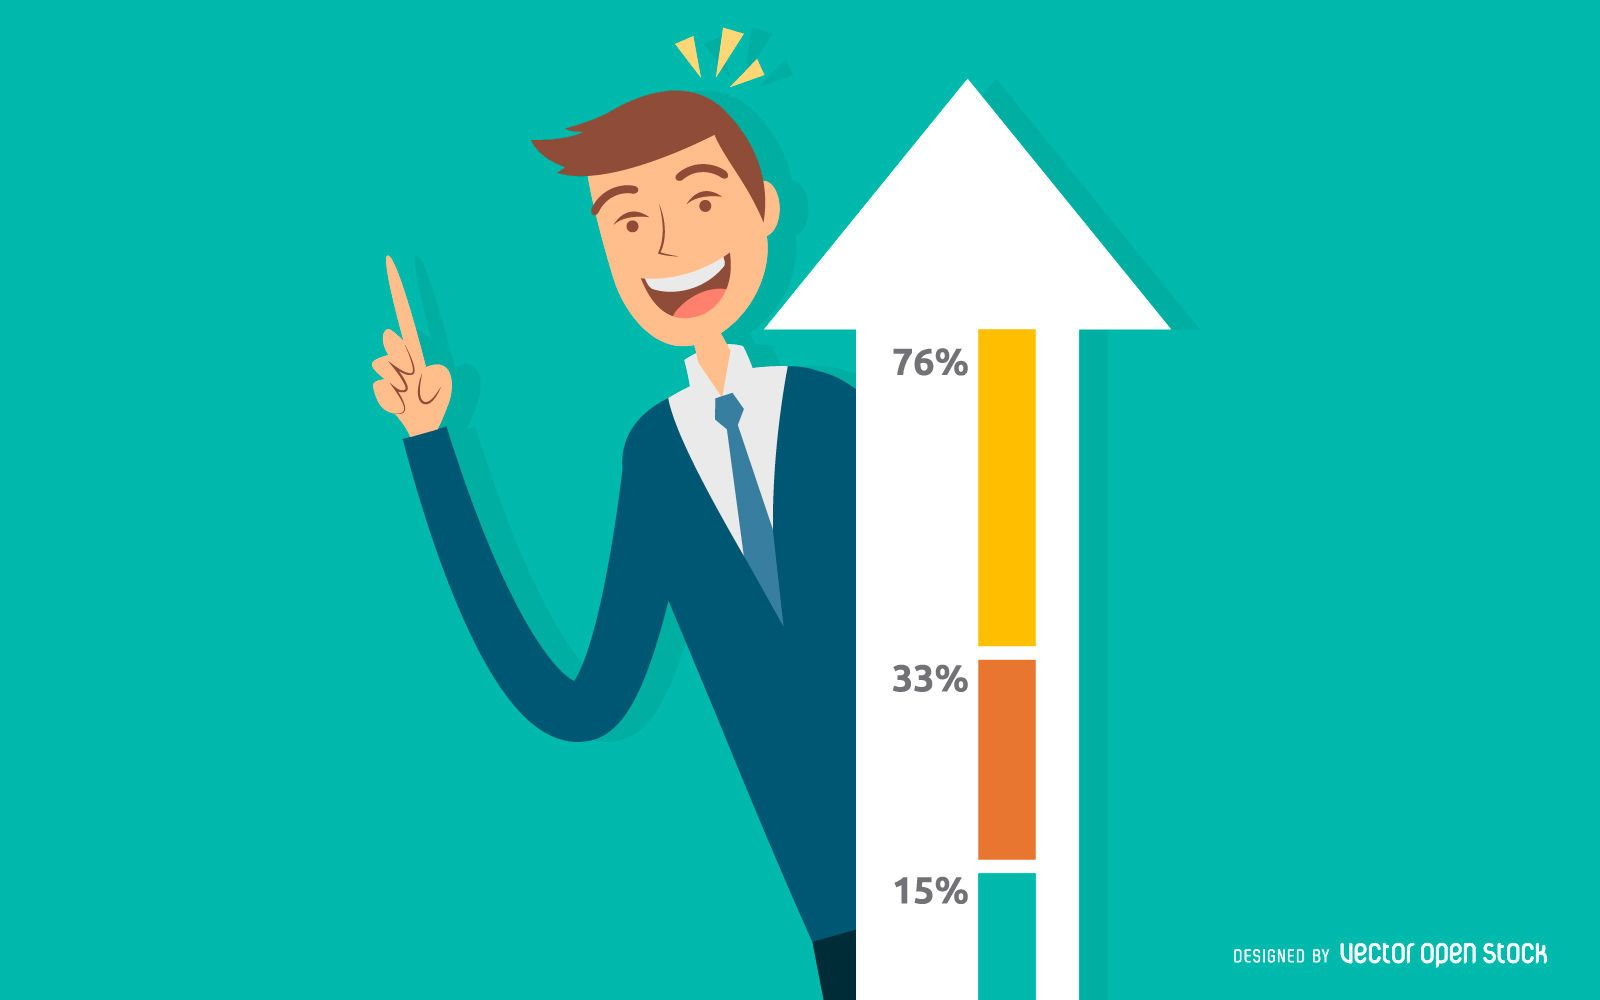 Business growth success illustration - Vector download